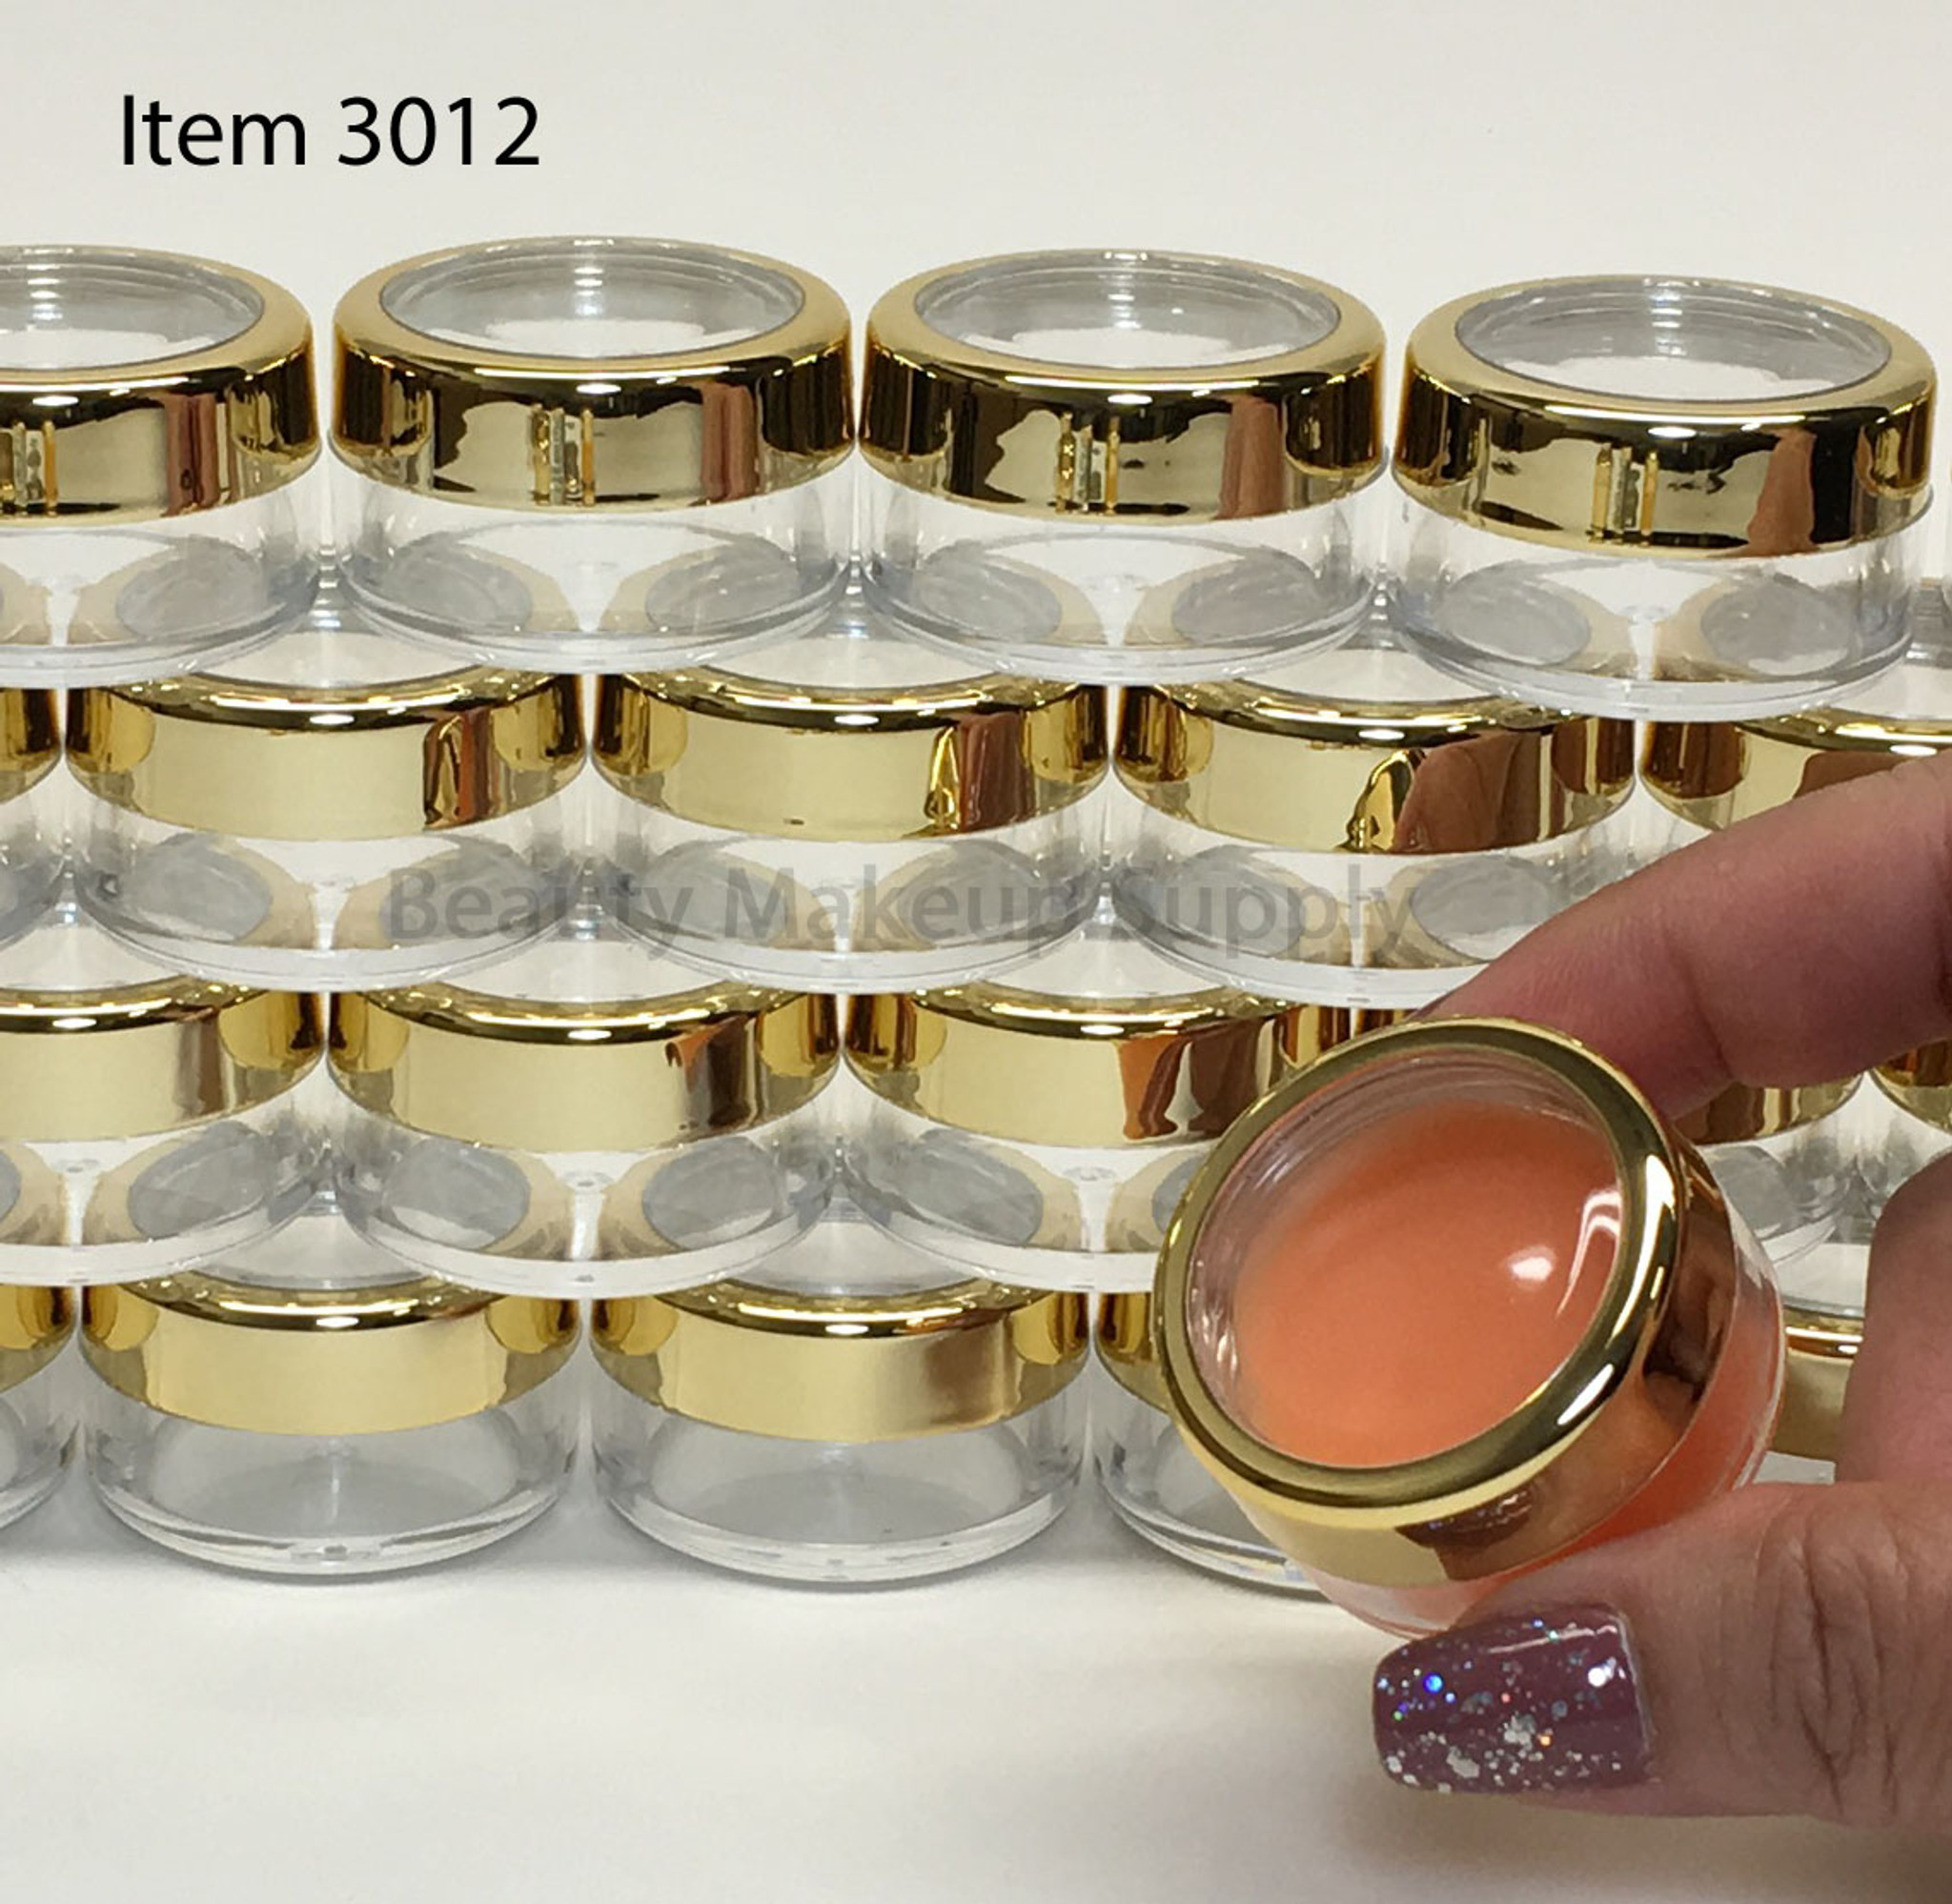 Luxury Cosmetic Round Jars with Gold Trim Caps - New Product at Beauty Makeup Supply